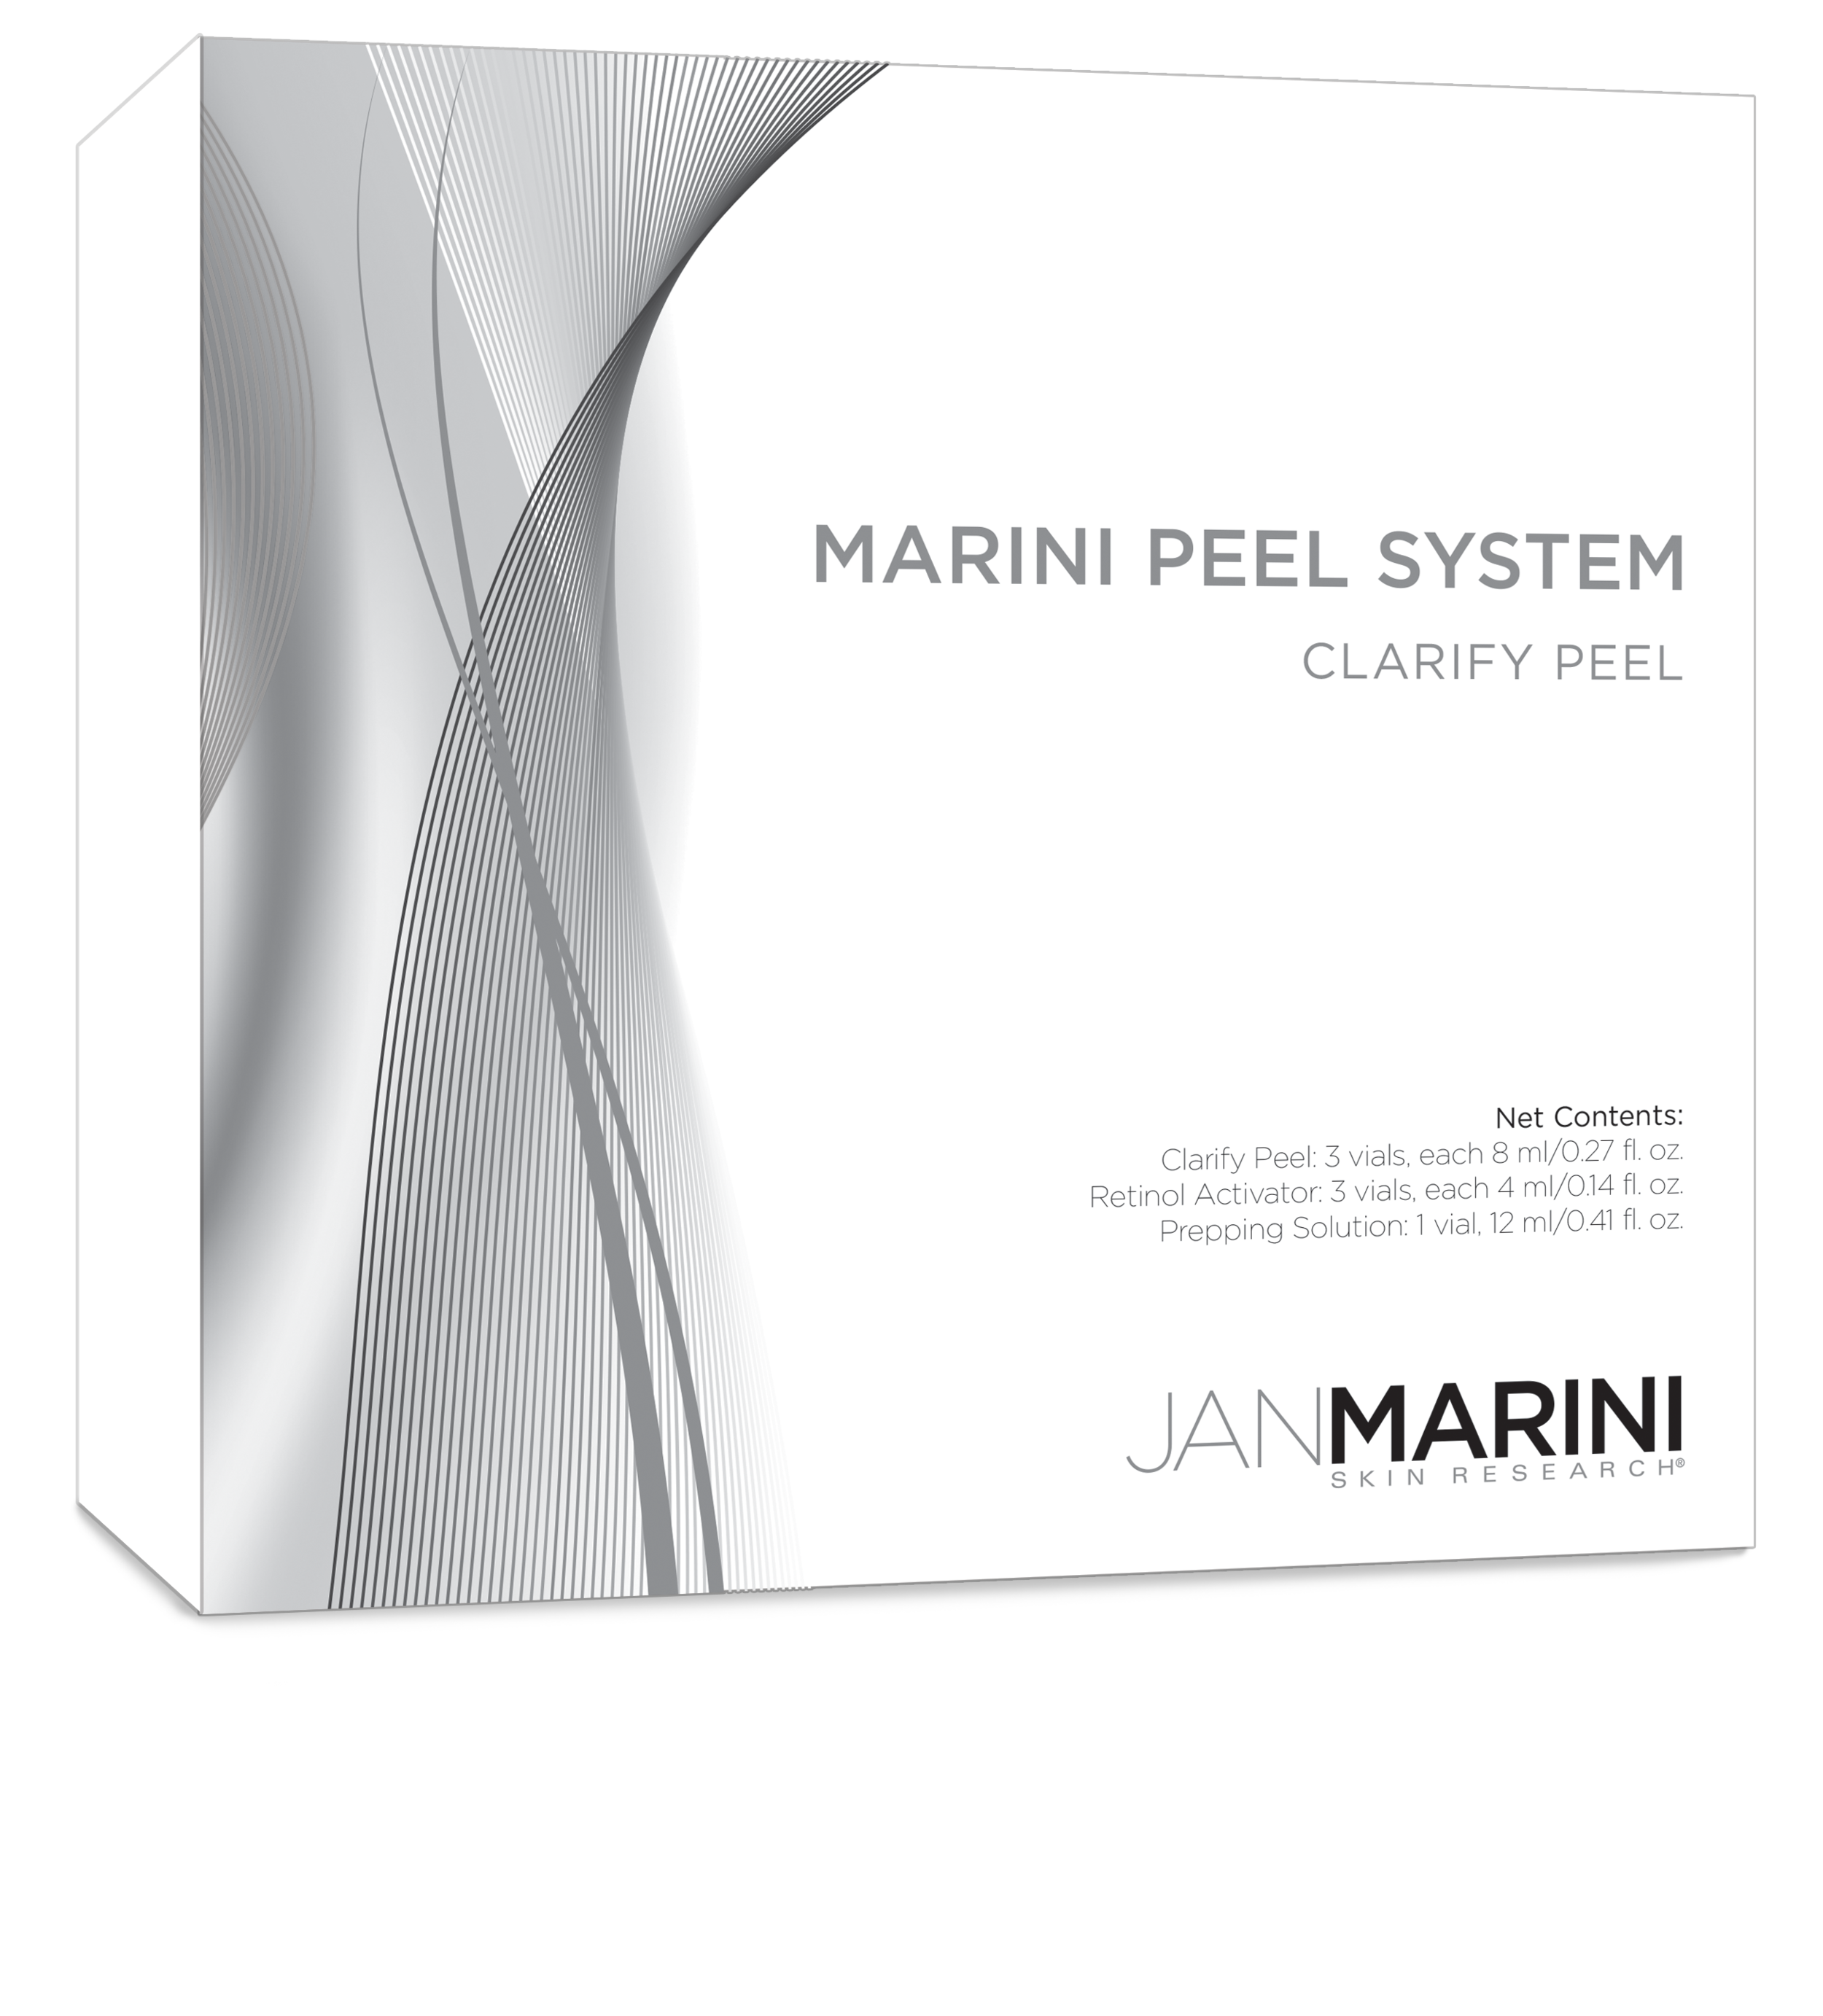 Product Images_HiRes_Marini_Peel_System_Clarify_Box_HiRes.png